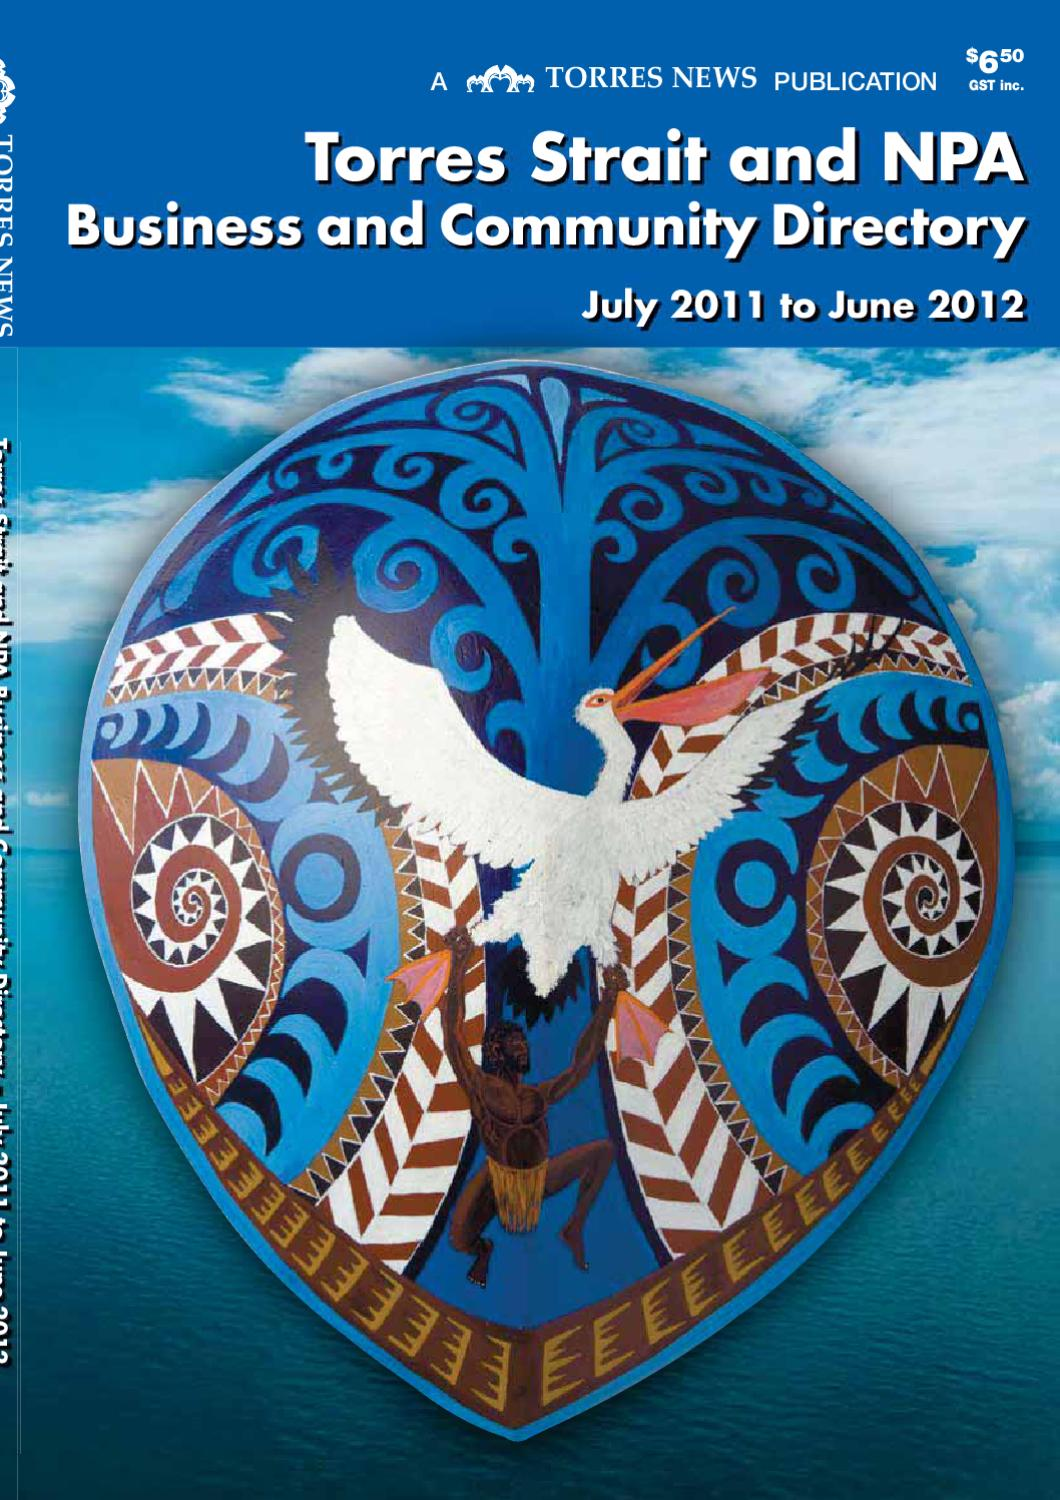 Torres Strait and NPA Business and Community Directory 2100